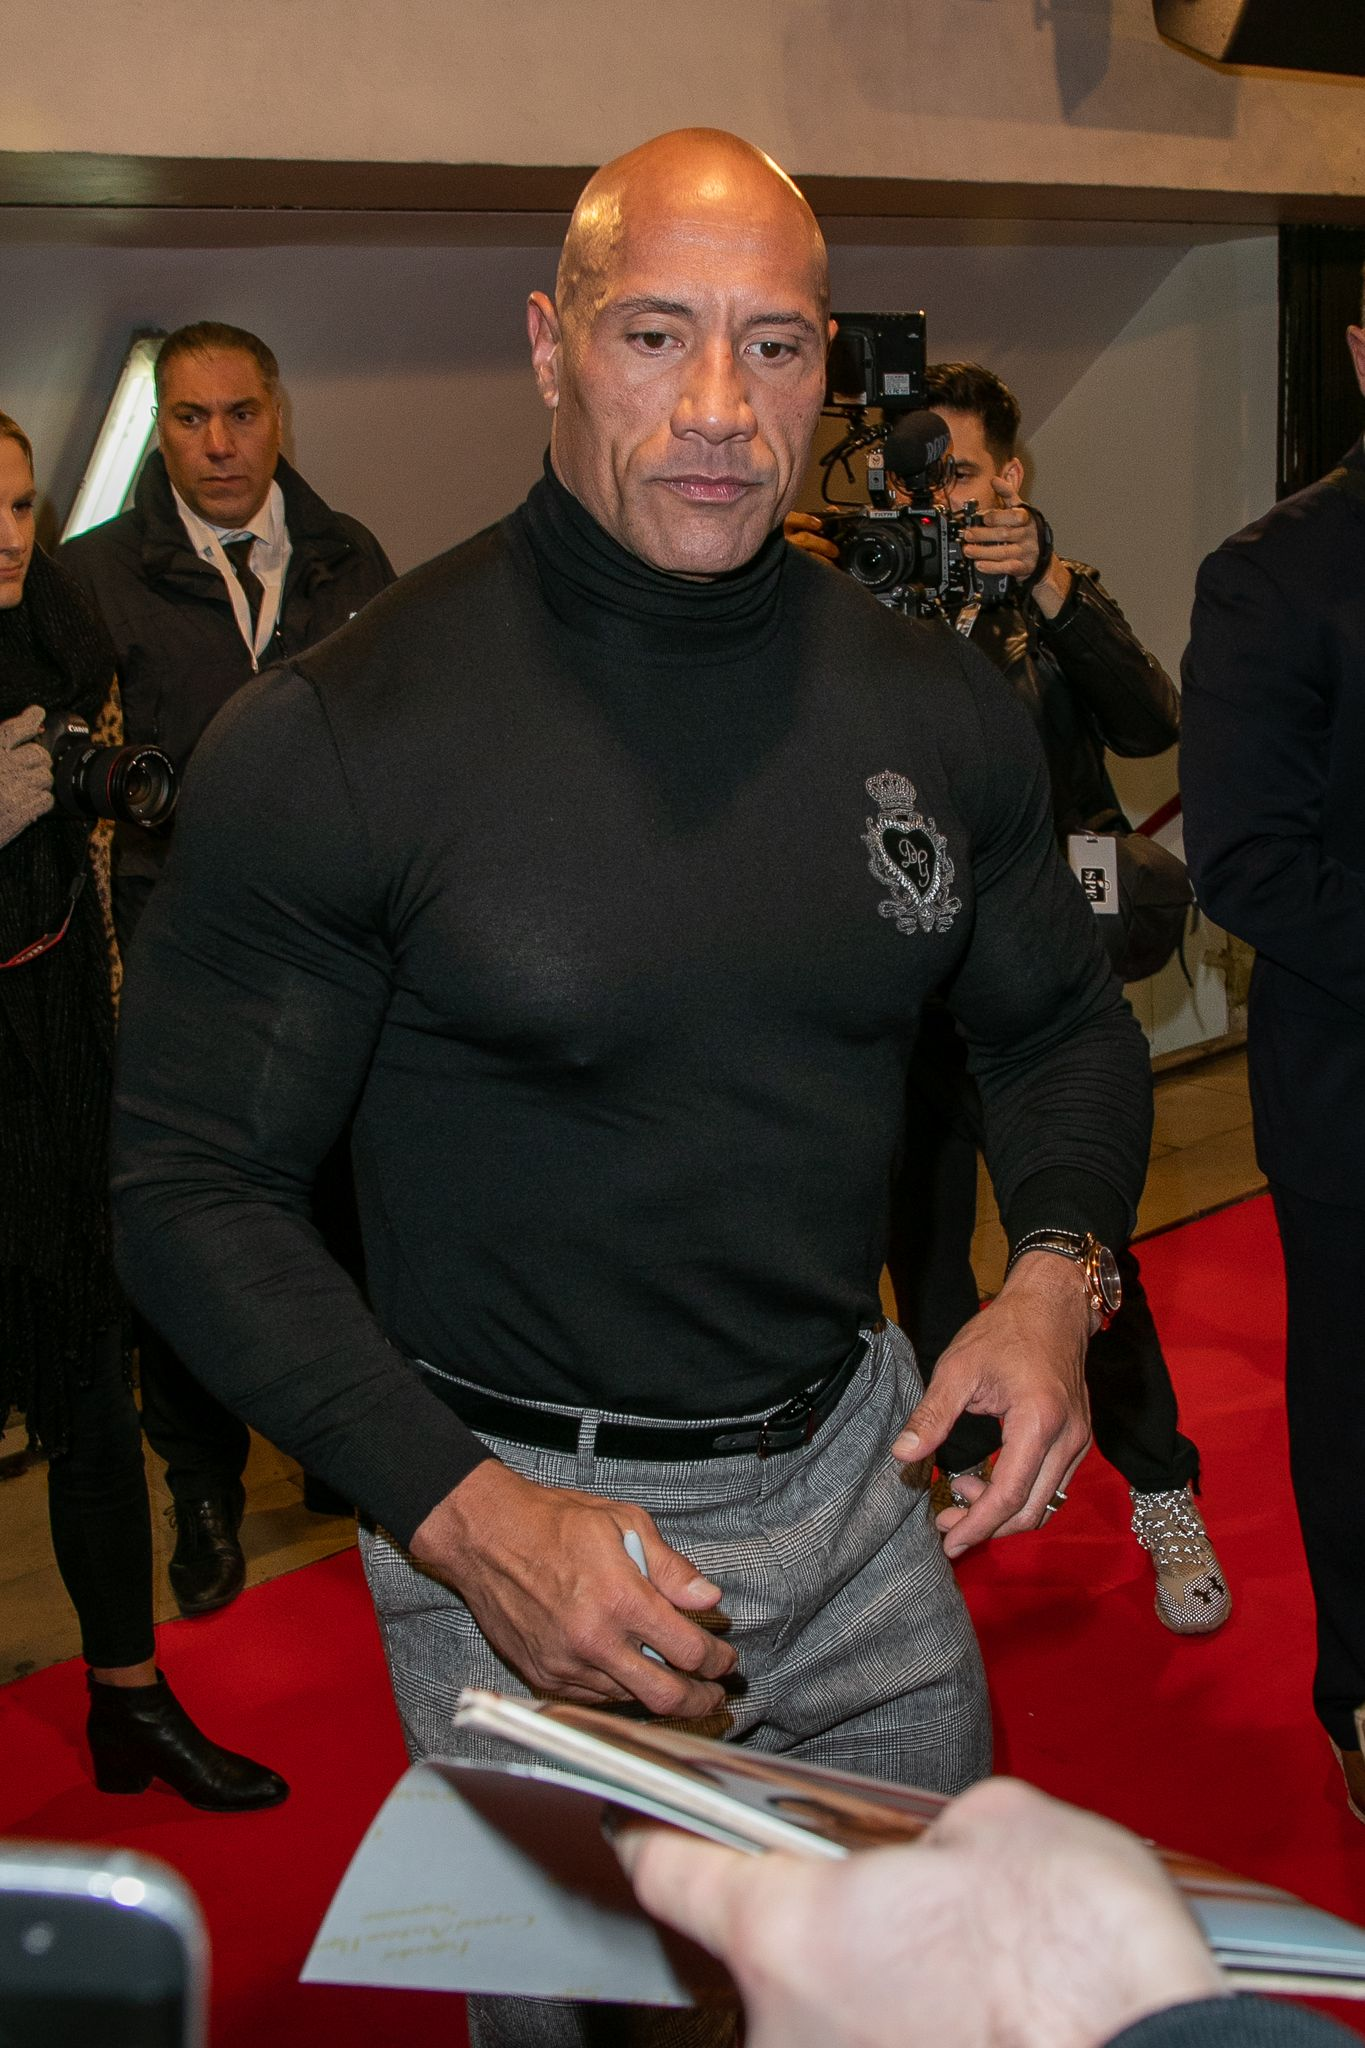 """Dwayne """"The Rock"""" Johnson at the """"Jumanji"""" premiere on December 03, 2019, in France. 